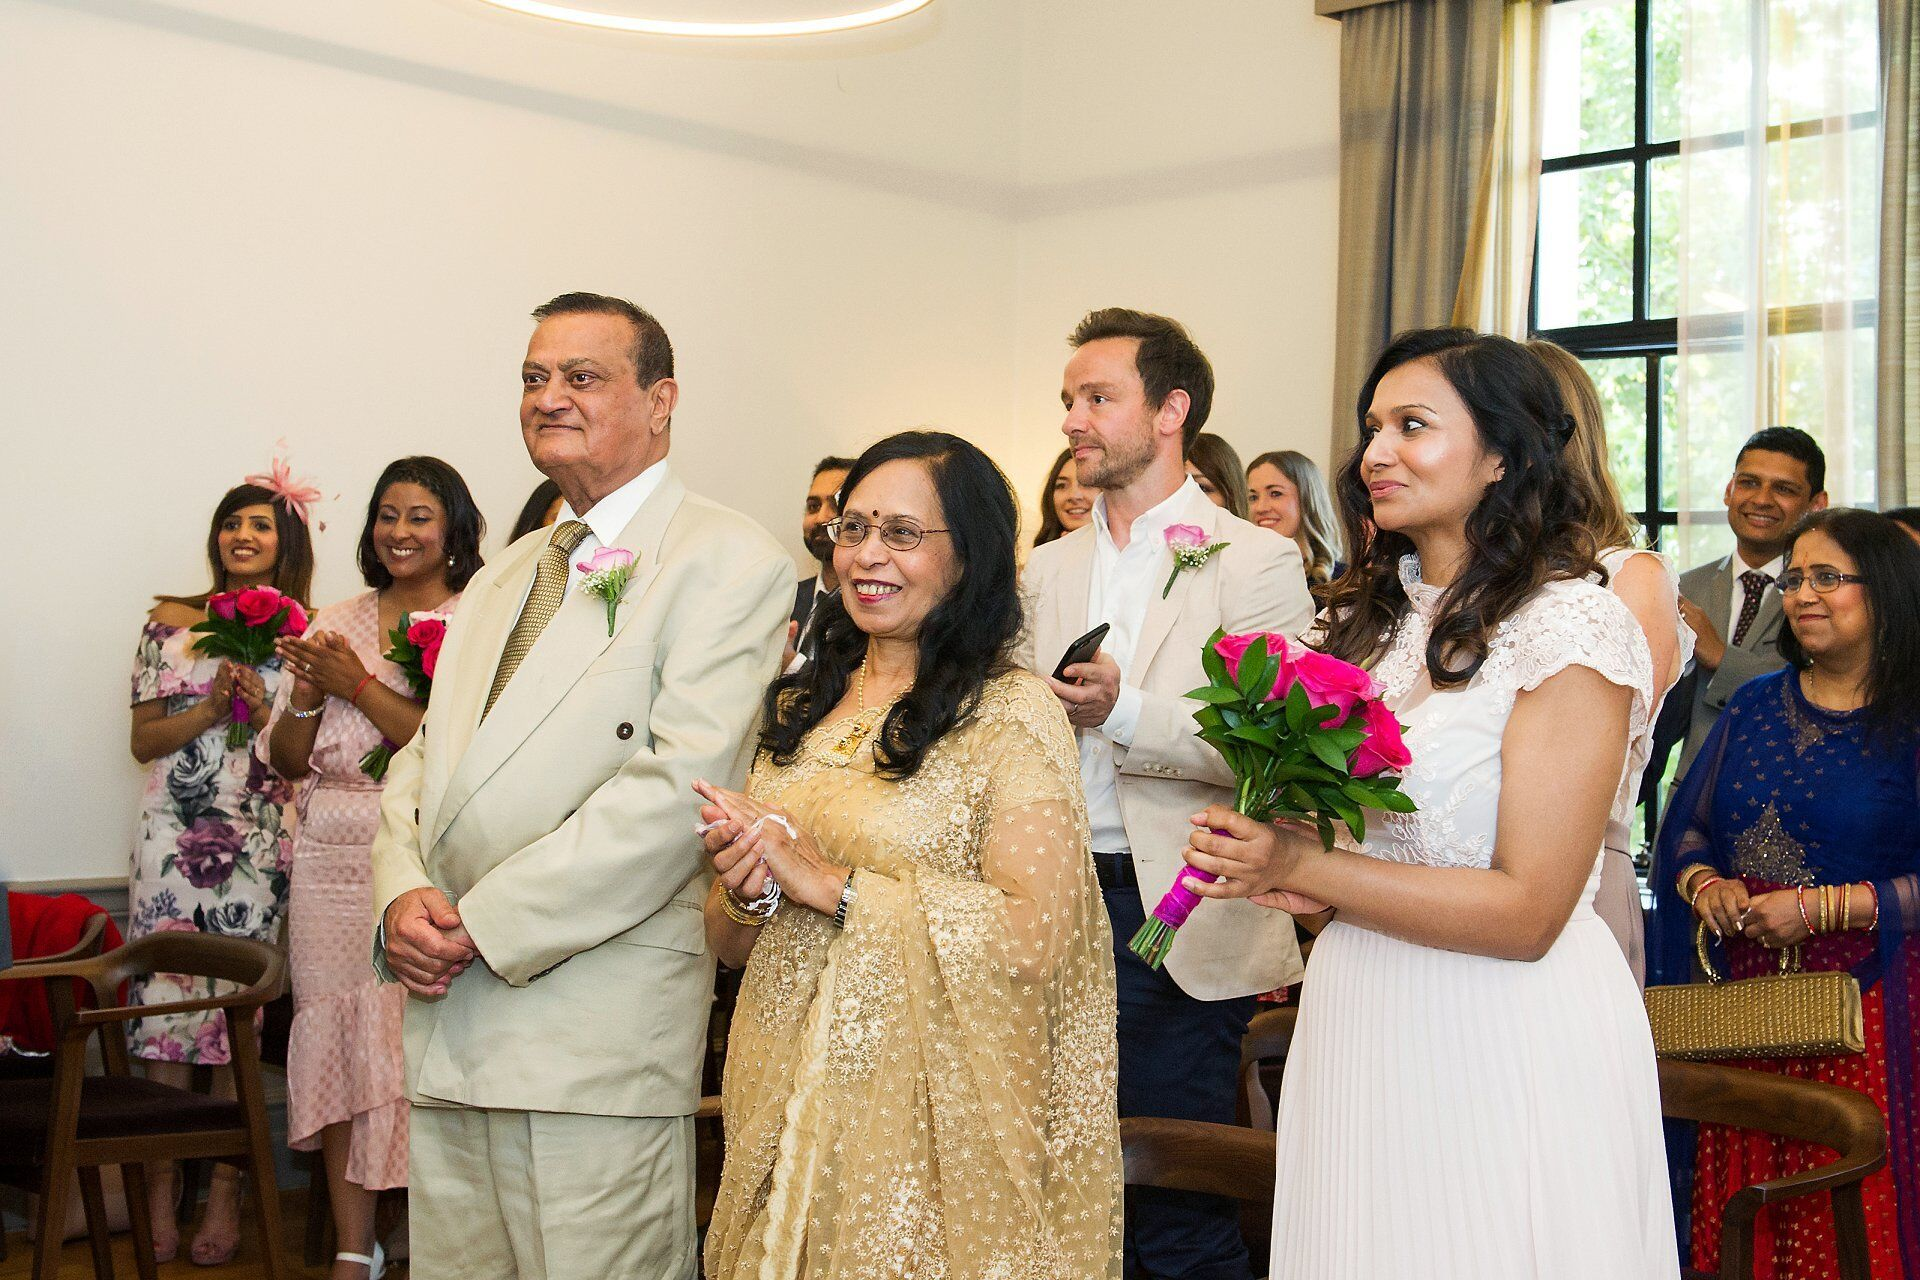 small london wedding venue at iconic westminster council house old marylebone town hall